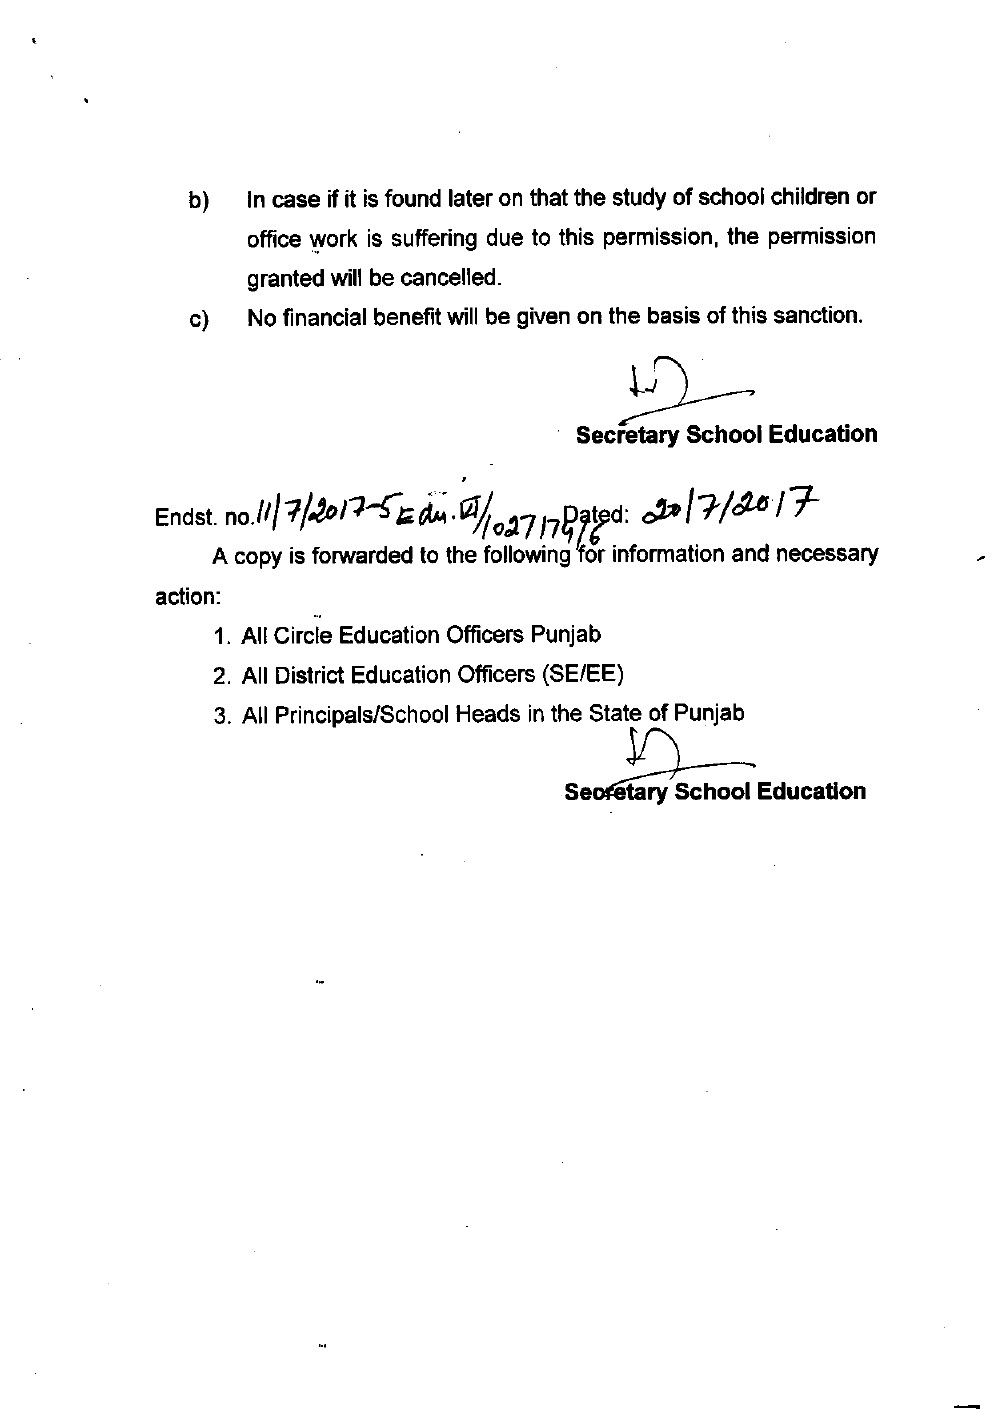 Letter of permission for higher education in edu deptt news 3 reply 20 on july 20 2017 054433 pm thecheapjerseys Choice Image